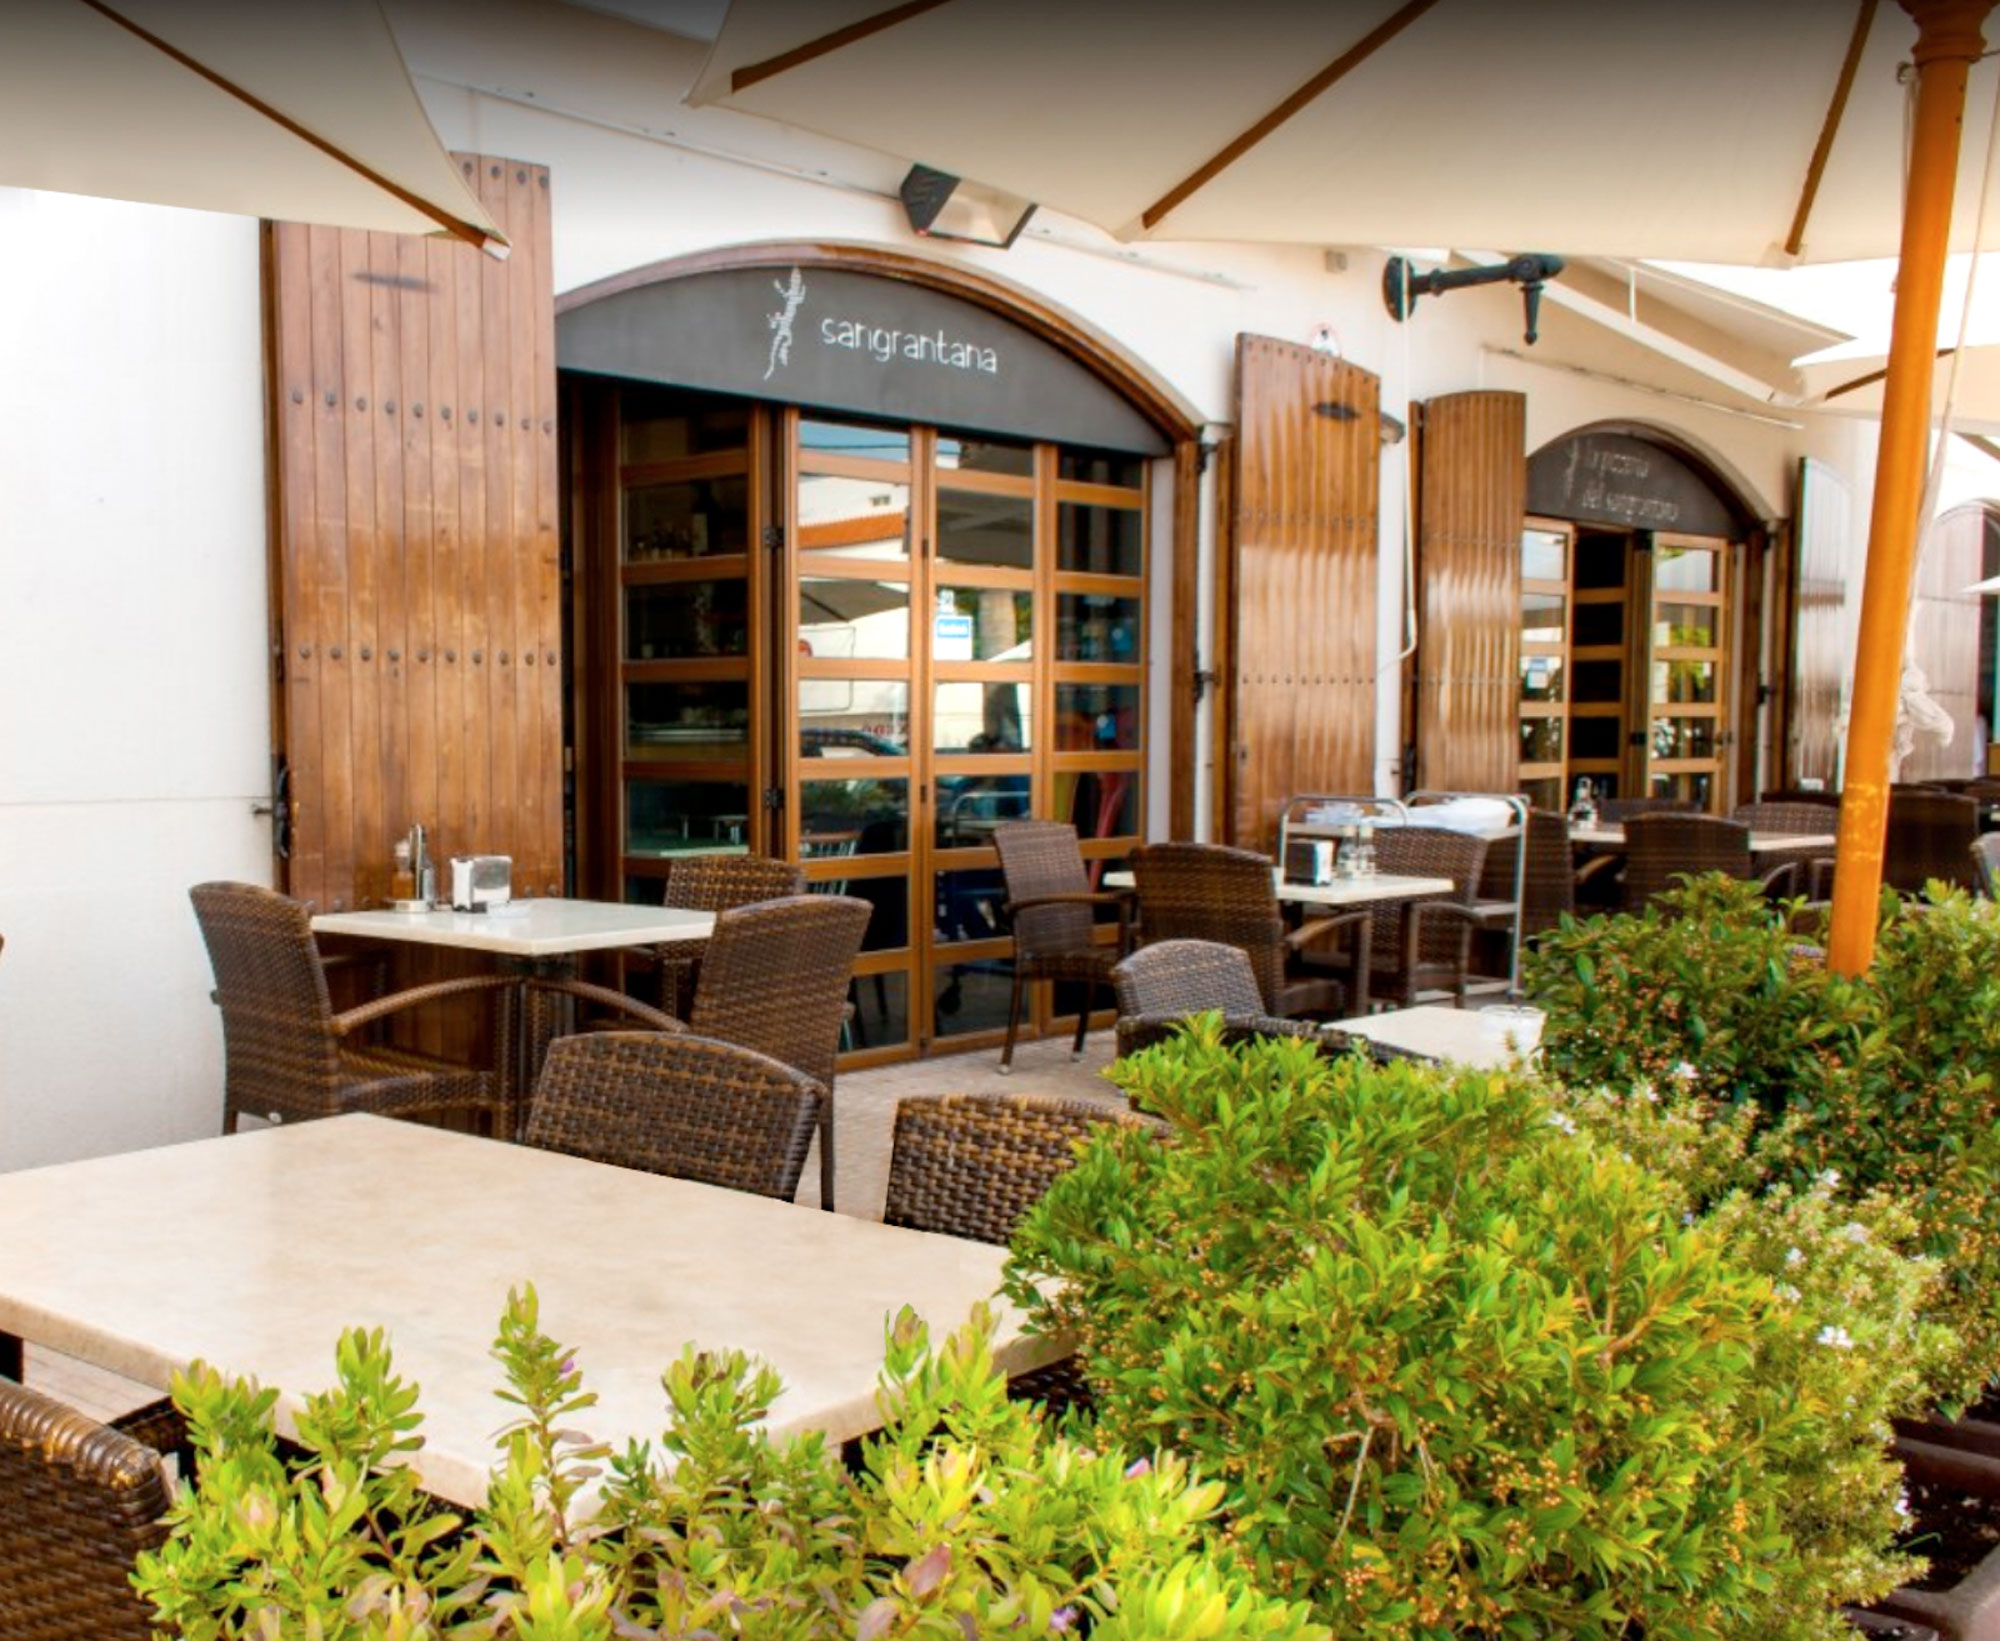 Restaurante en ibiza arcdisseny interiorismo y decoraci n for Interiorismo y decoracion